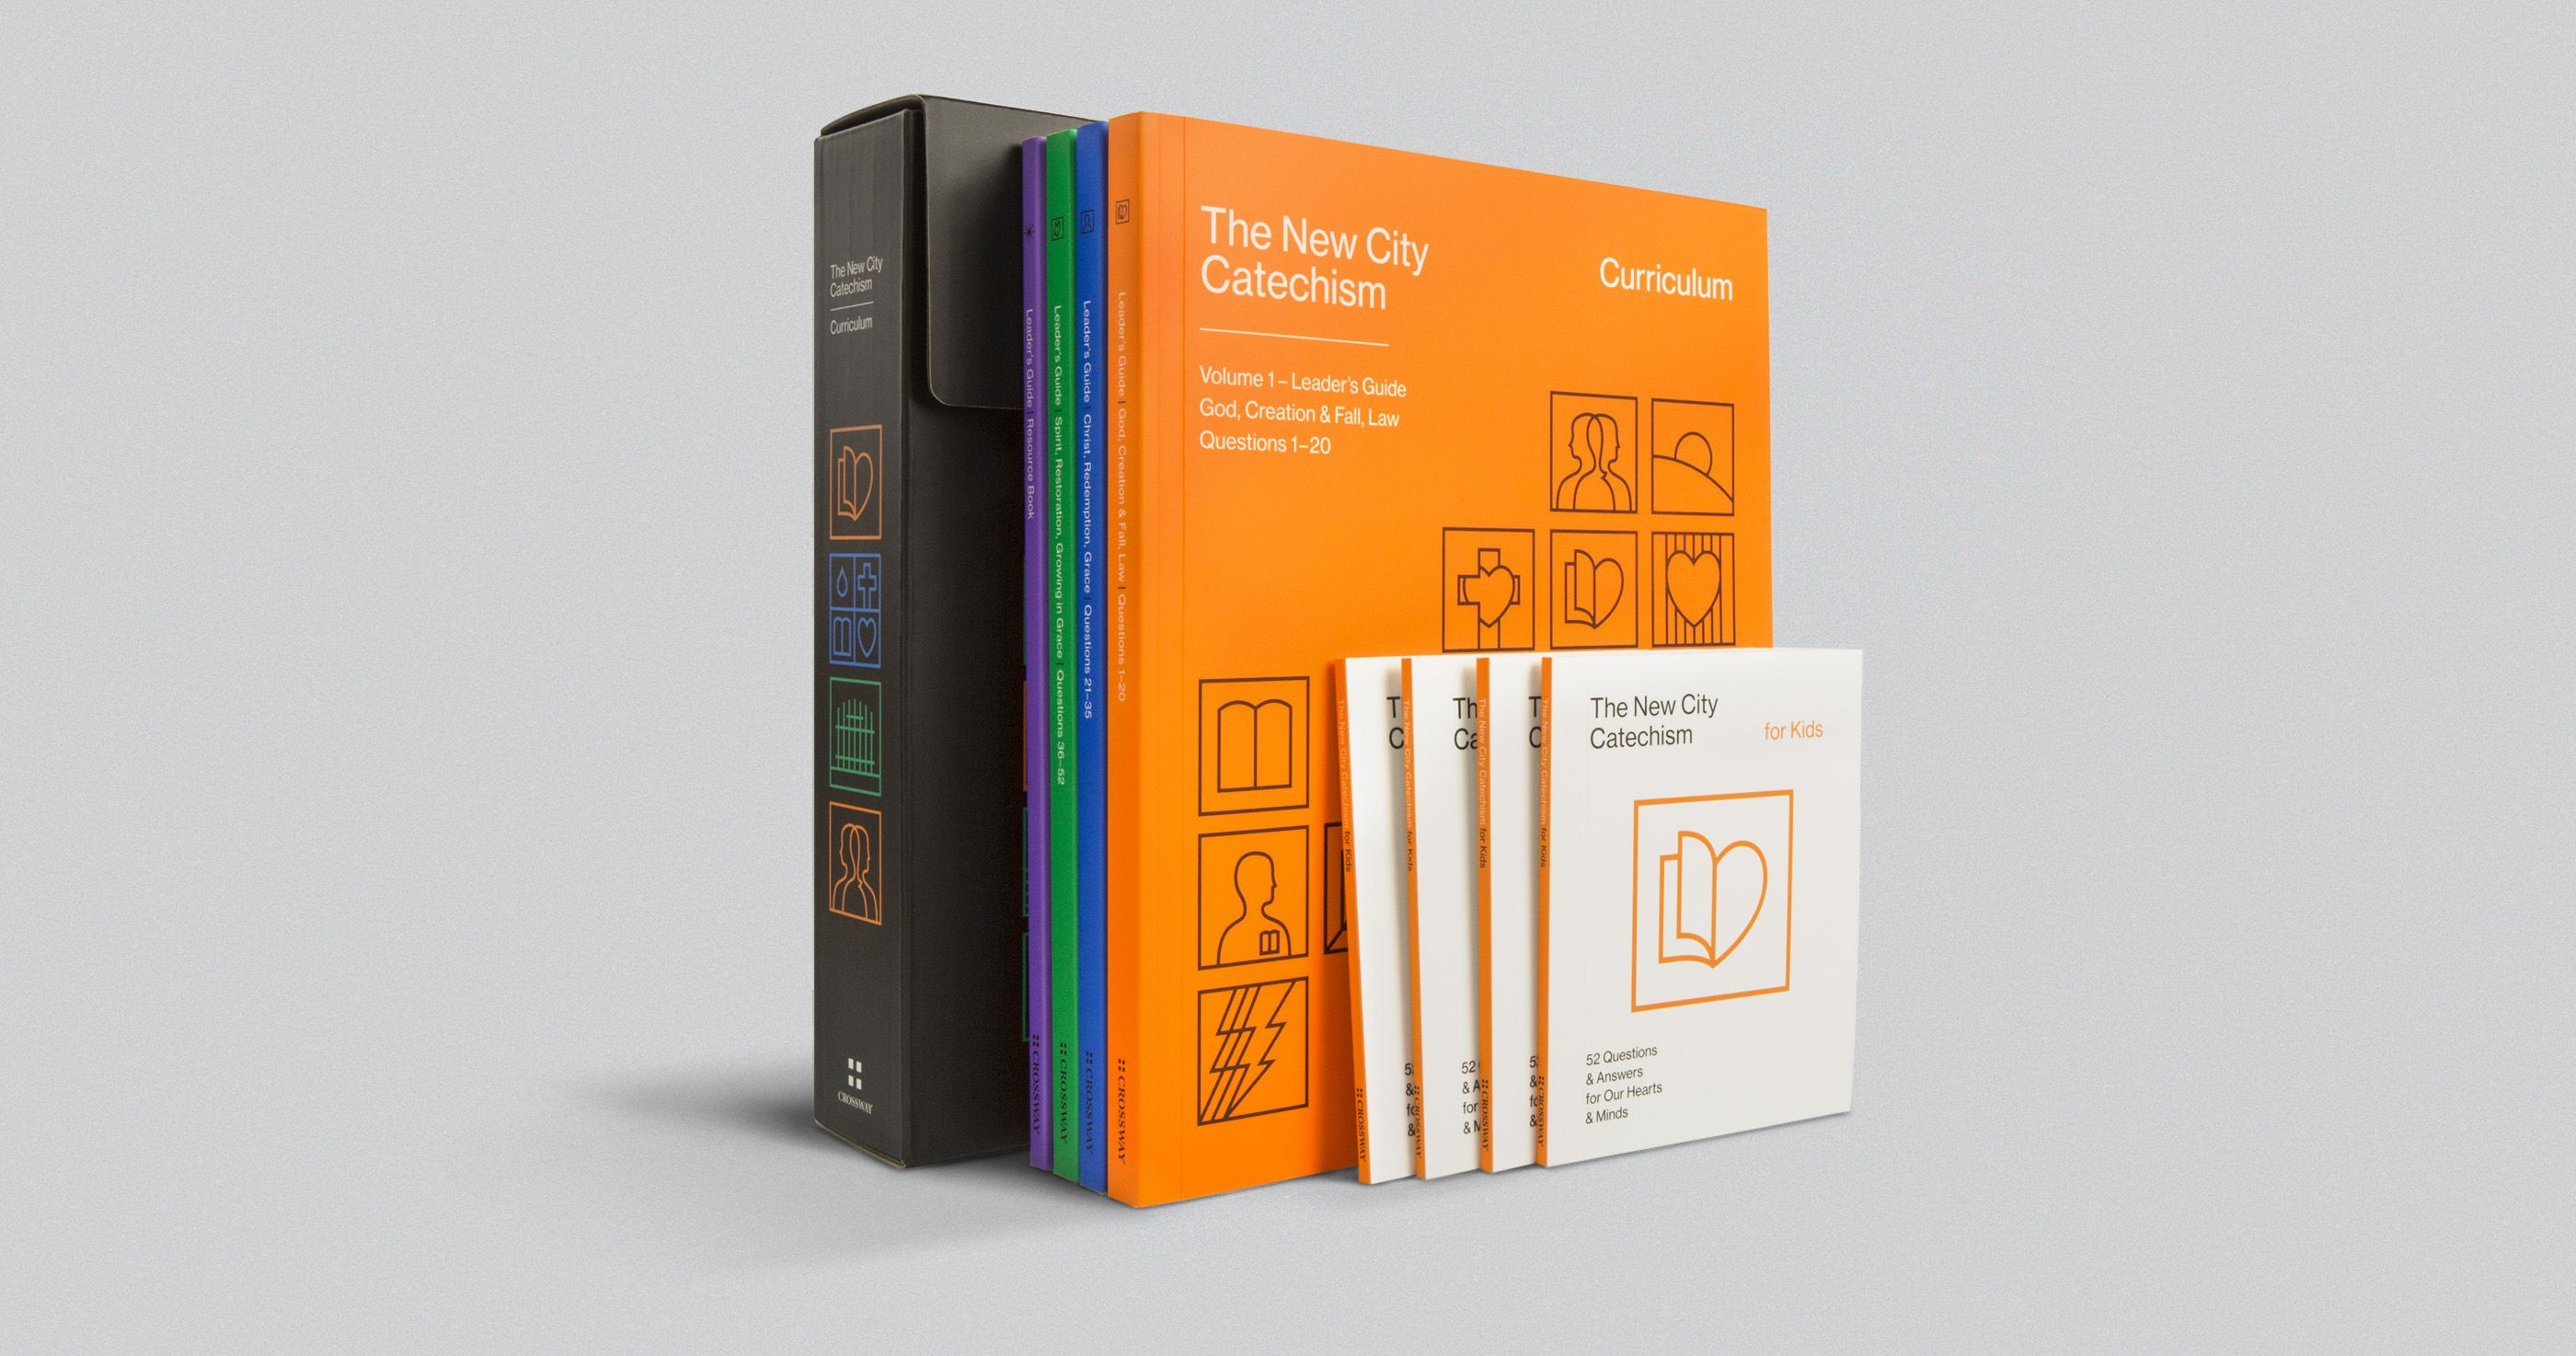 Introducing The New City Catechism Curriculum